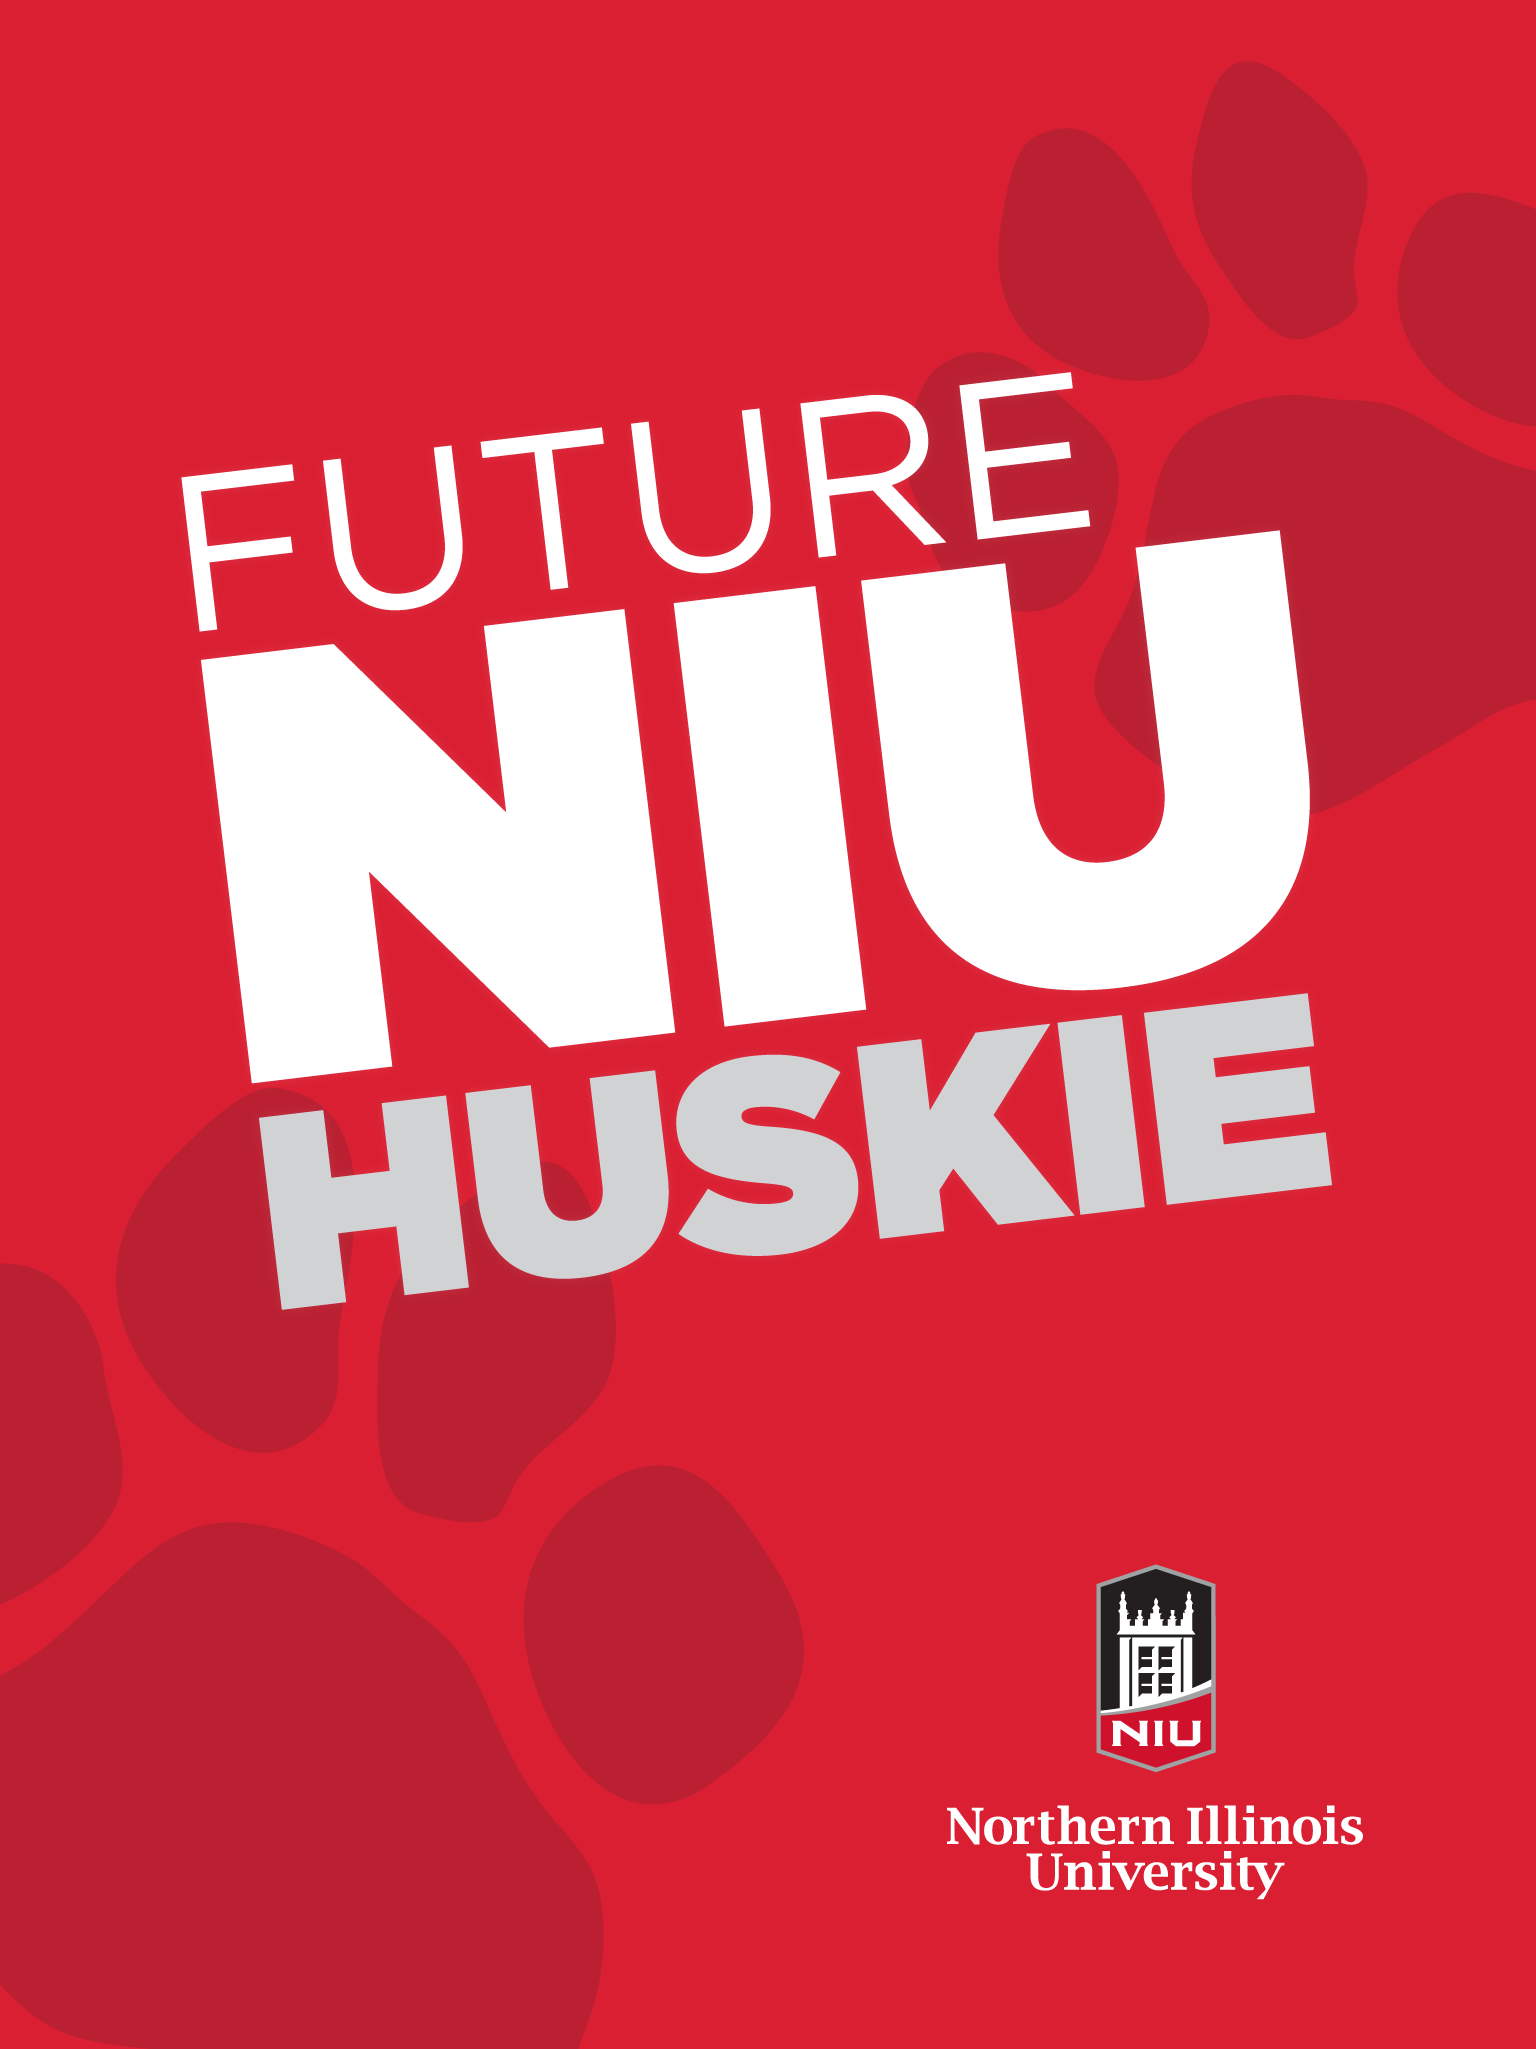 Future Huskie - Red for iPad